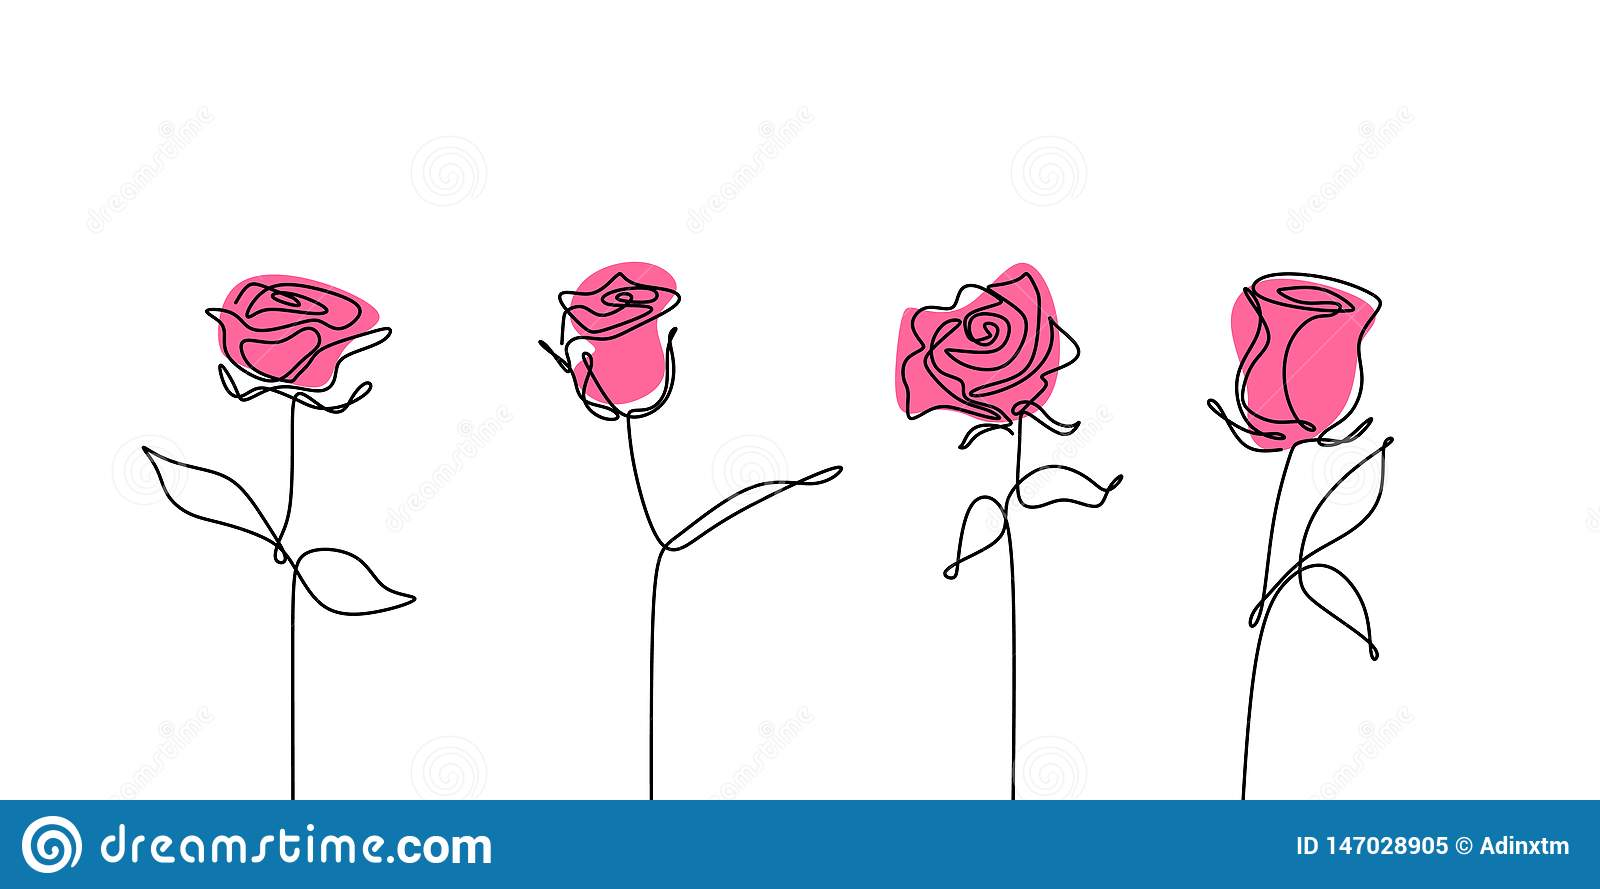 Rose flower continuous line drawing set collections